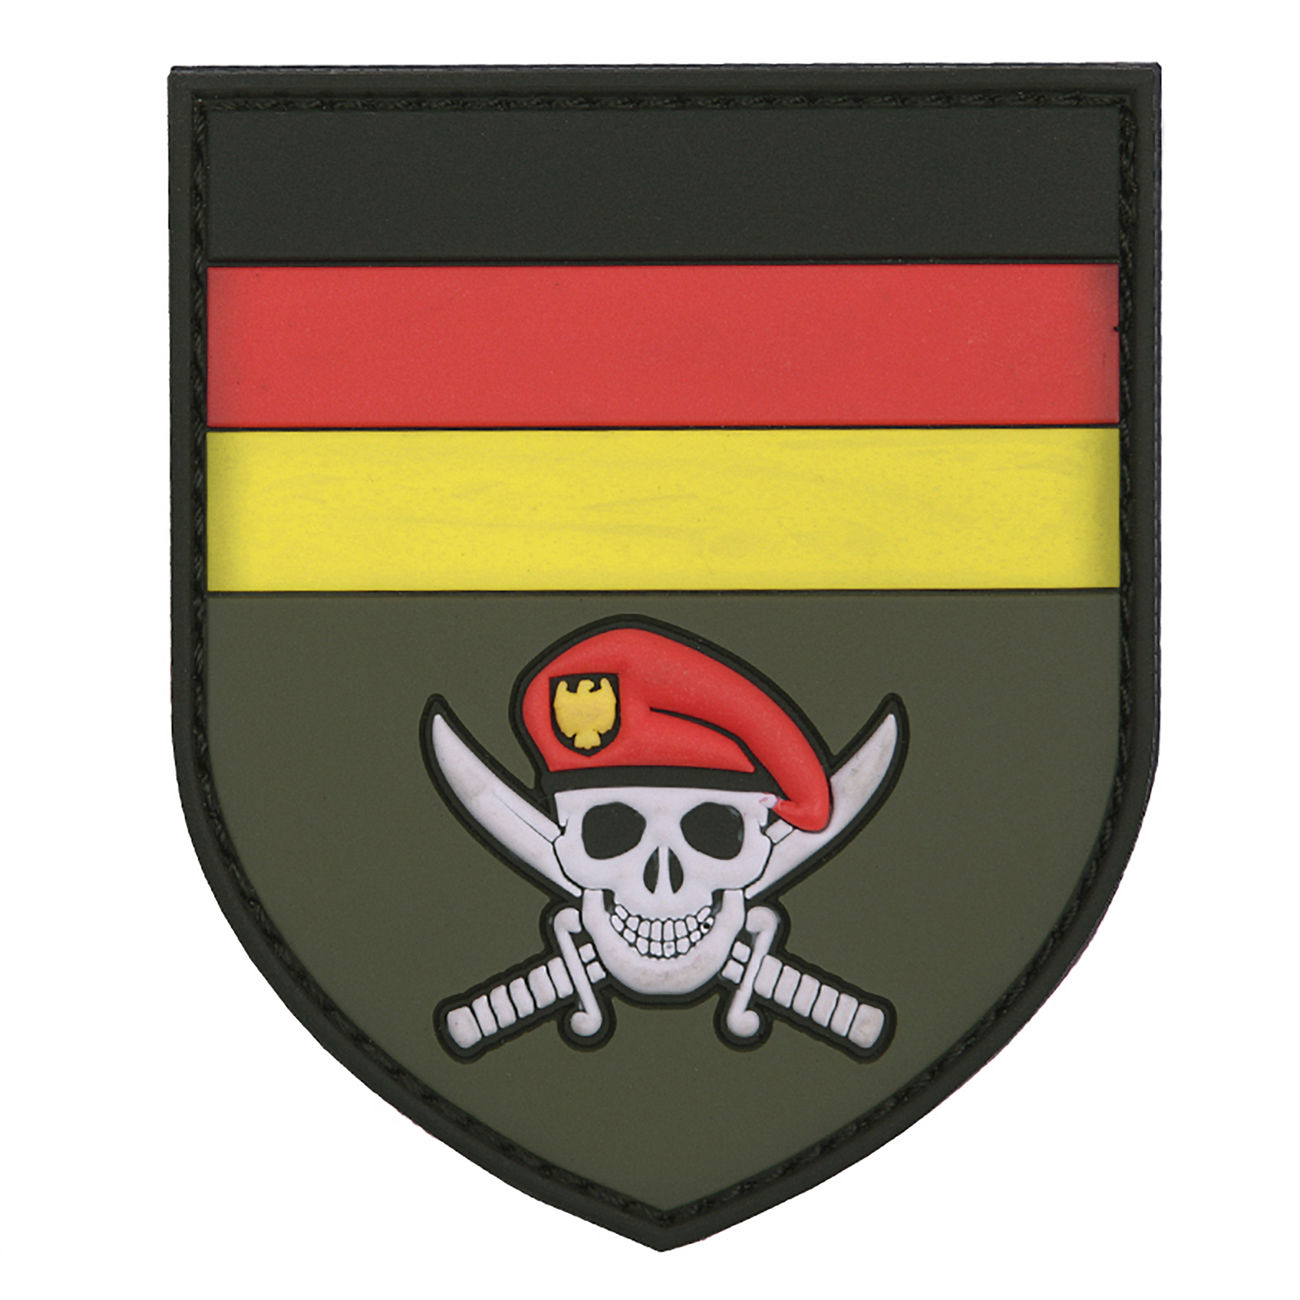 3D Rubber Patch German Commando Skull 0